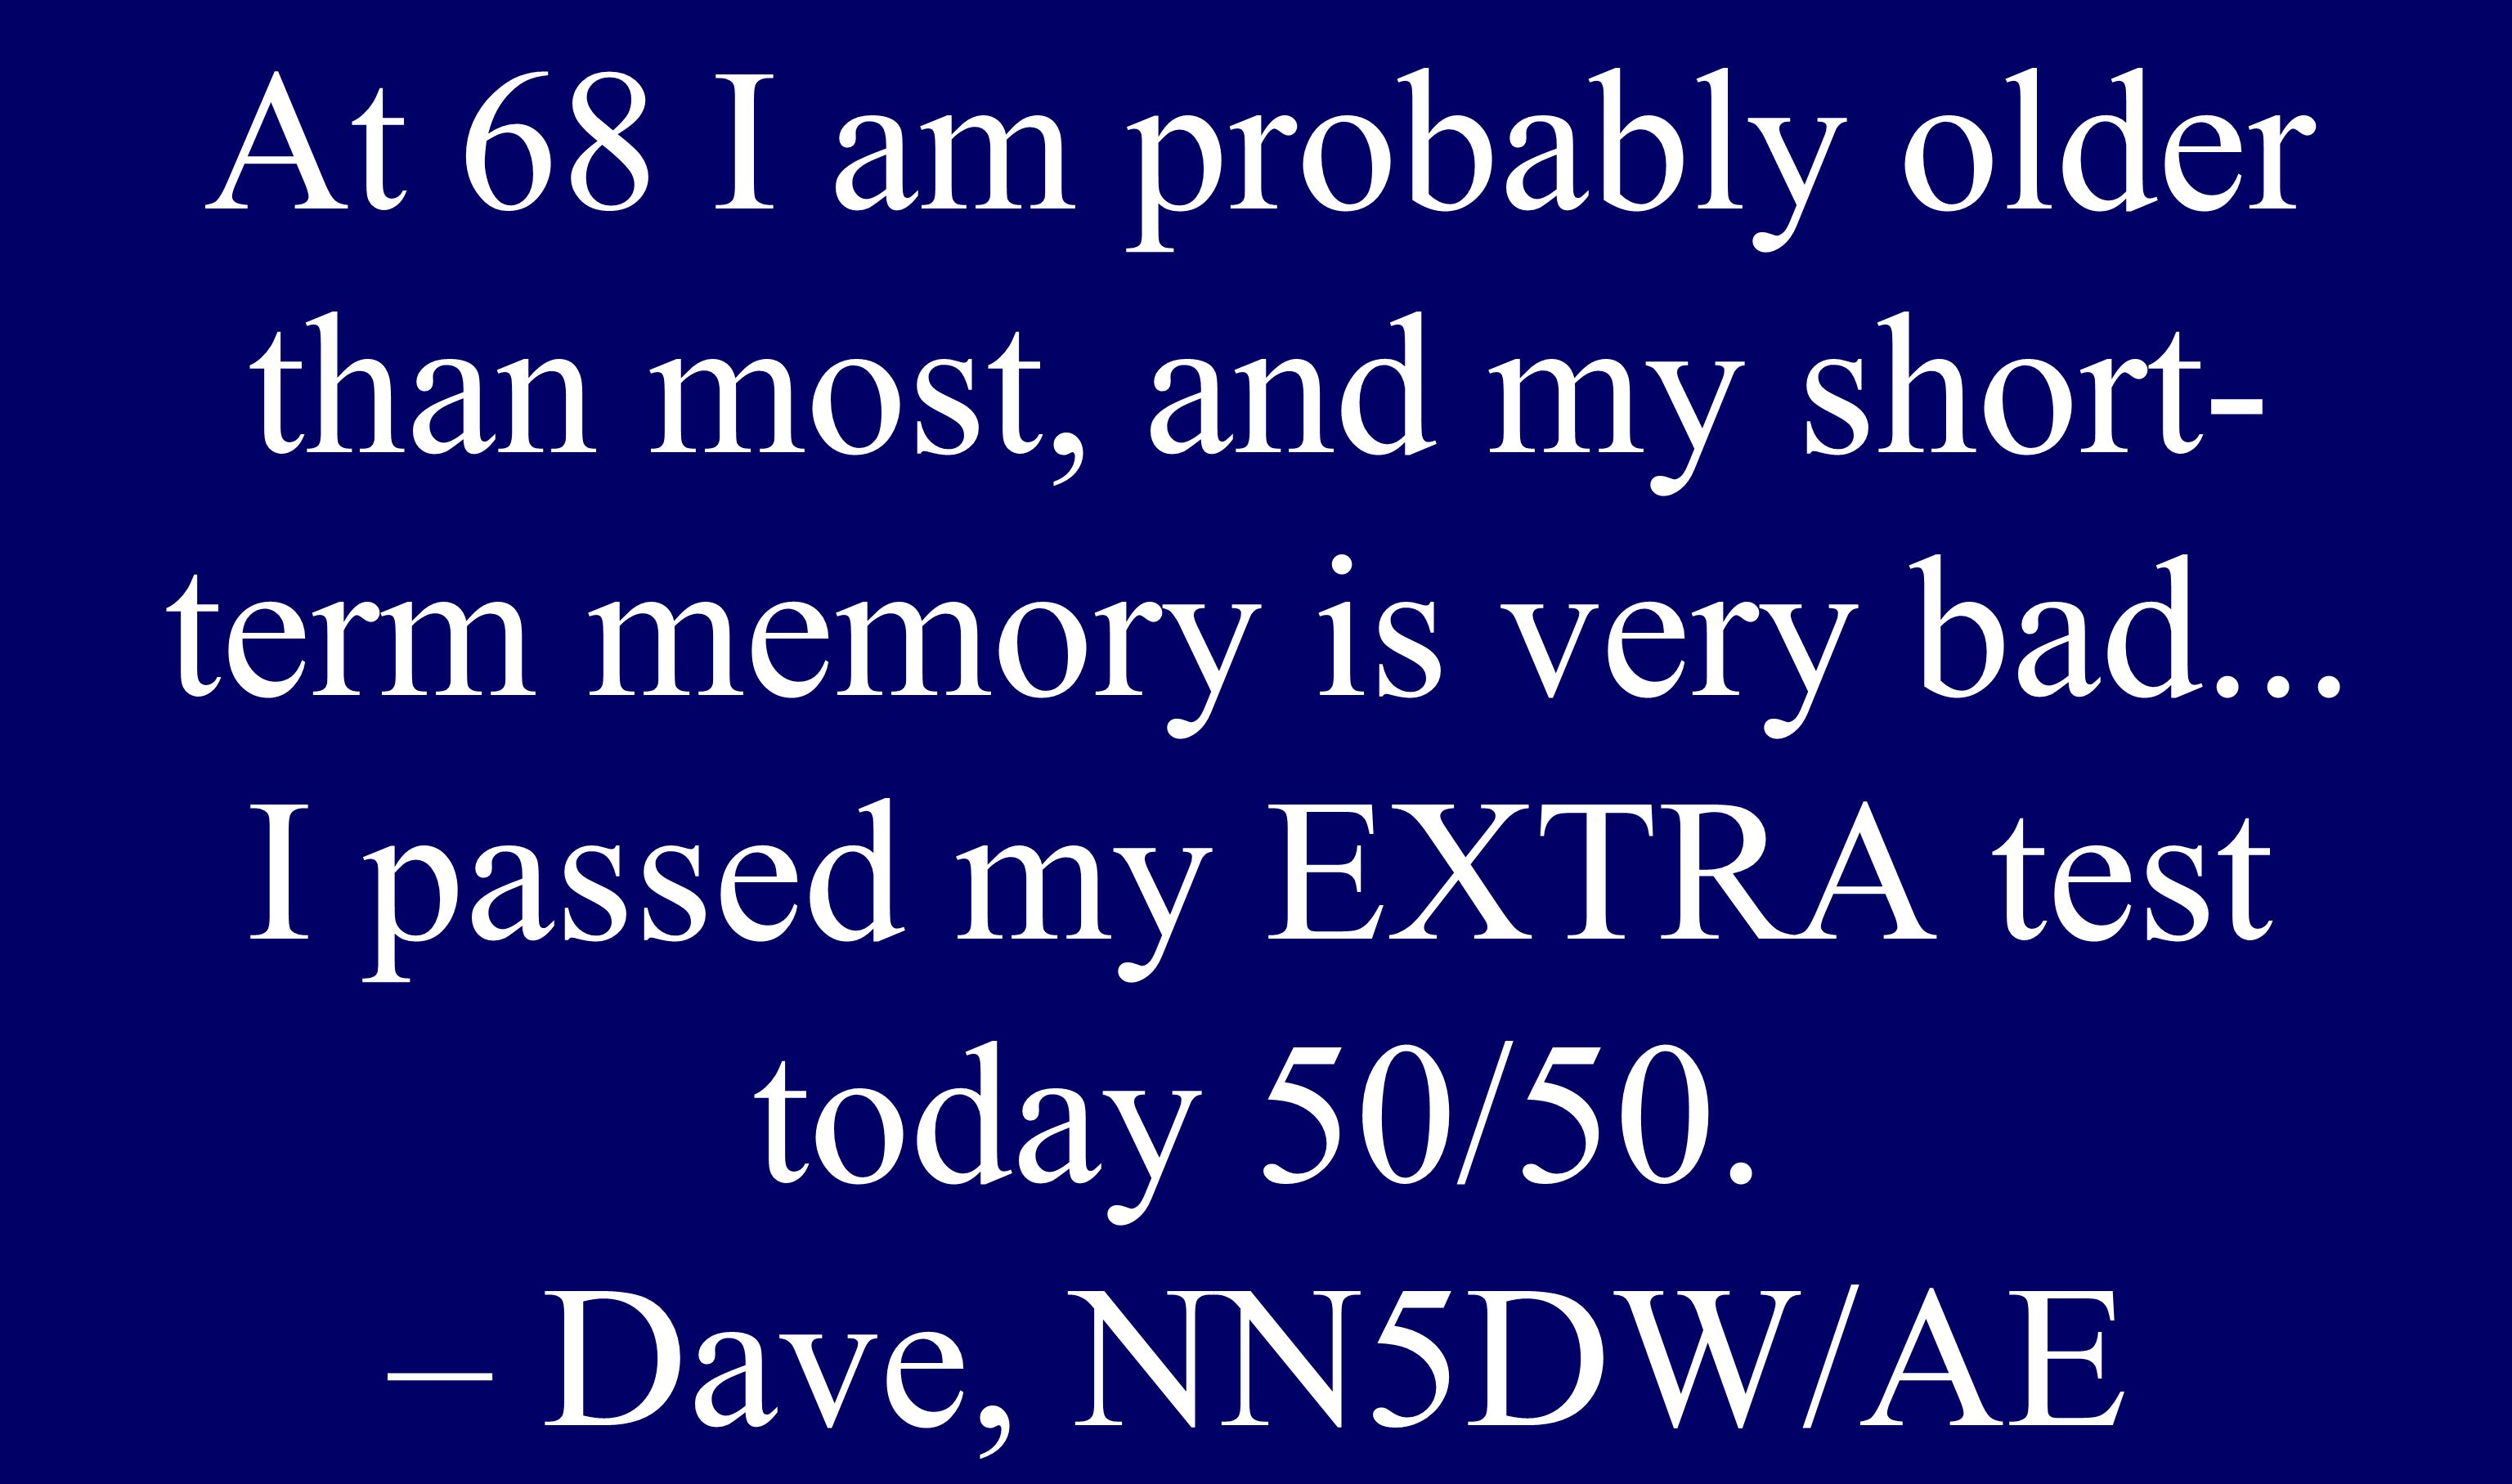 At 68 I am probably older than most, and my short- term memory is very bad...